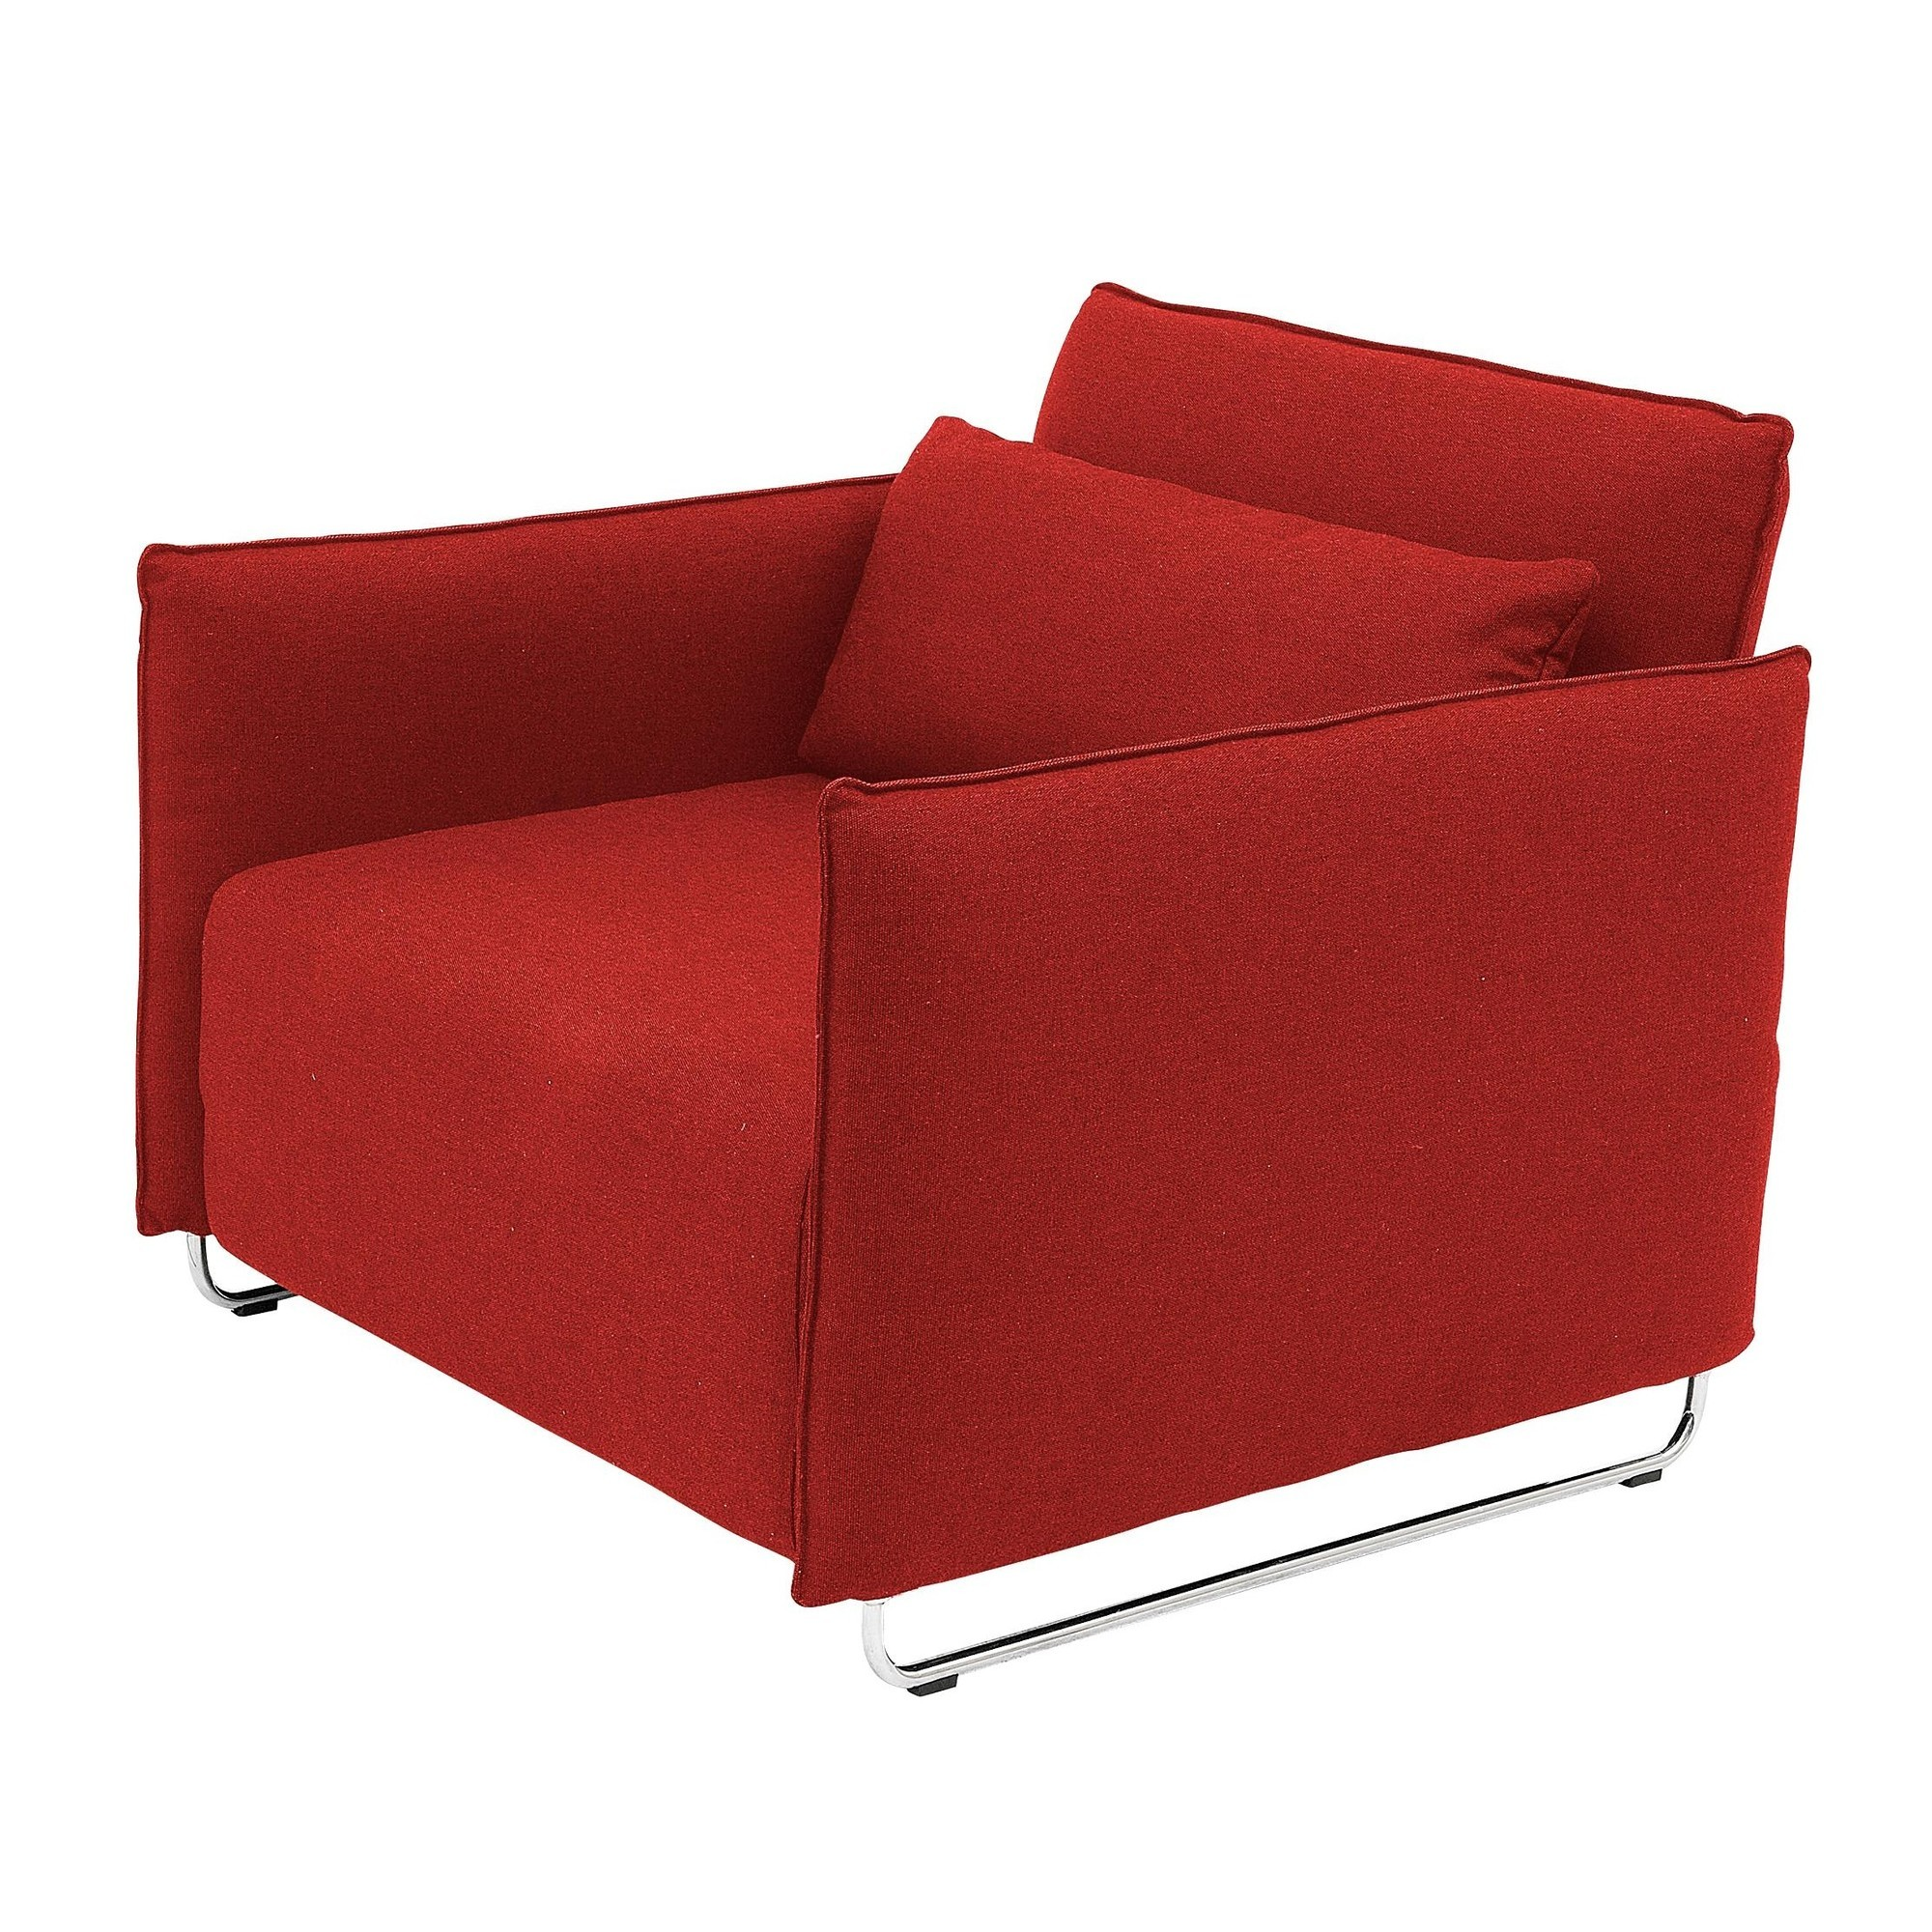 Schlafsessel Design Softline Cord Armchair / Bed | Ambientedirect